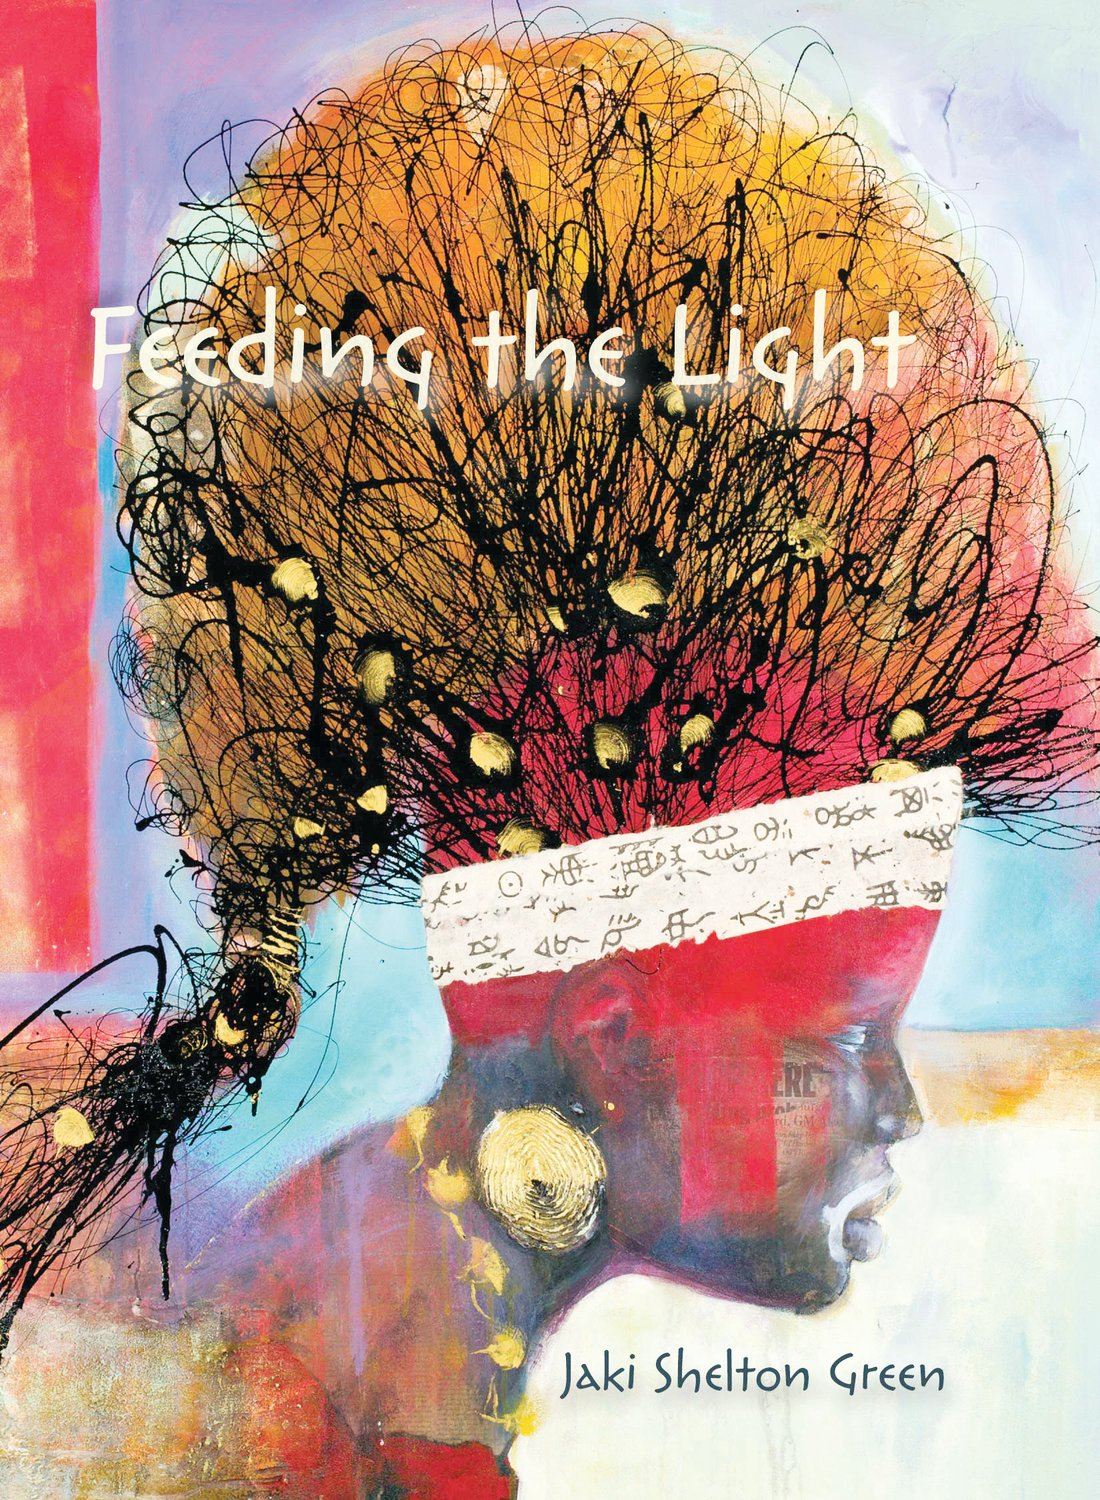 'Feeding The Light' by Jaki Shelton Green